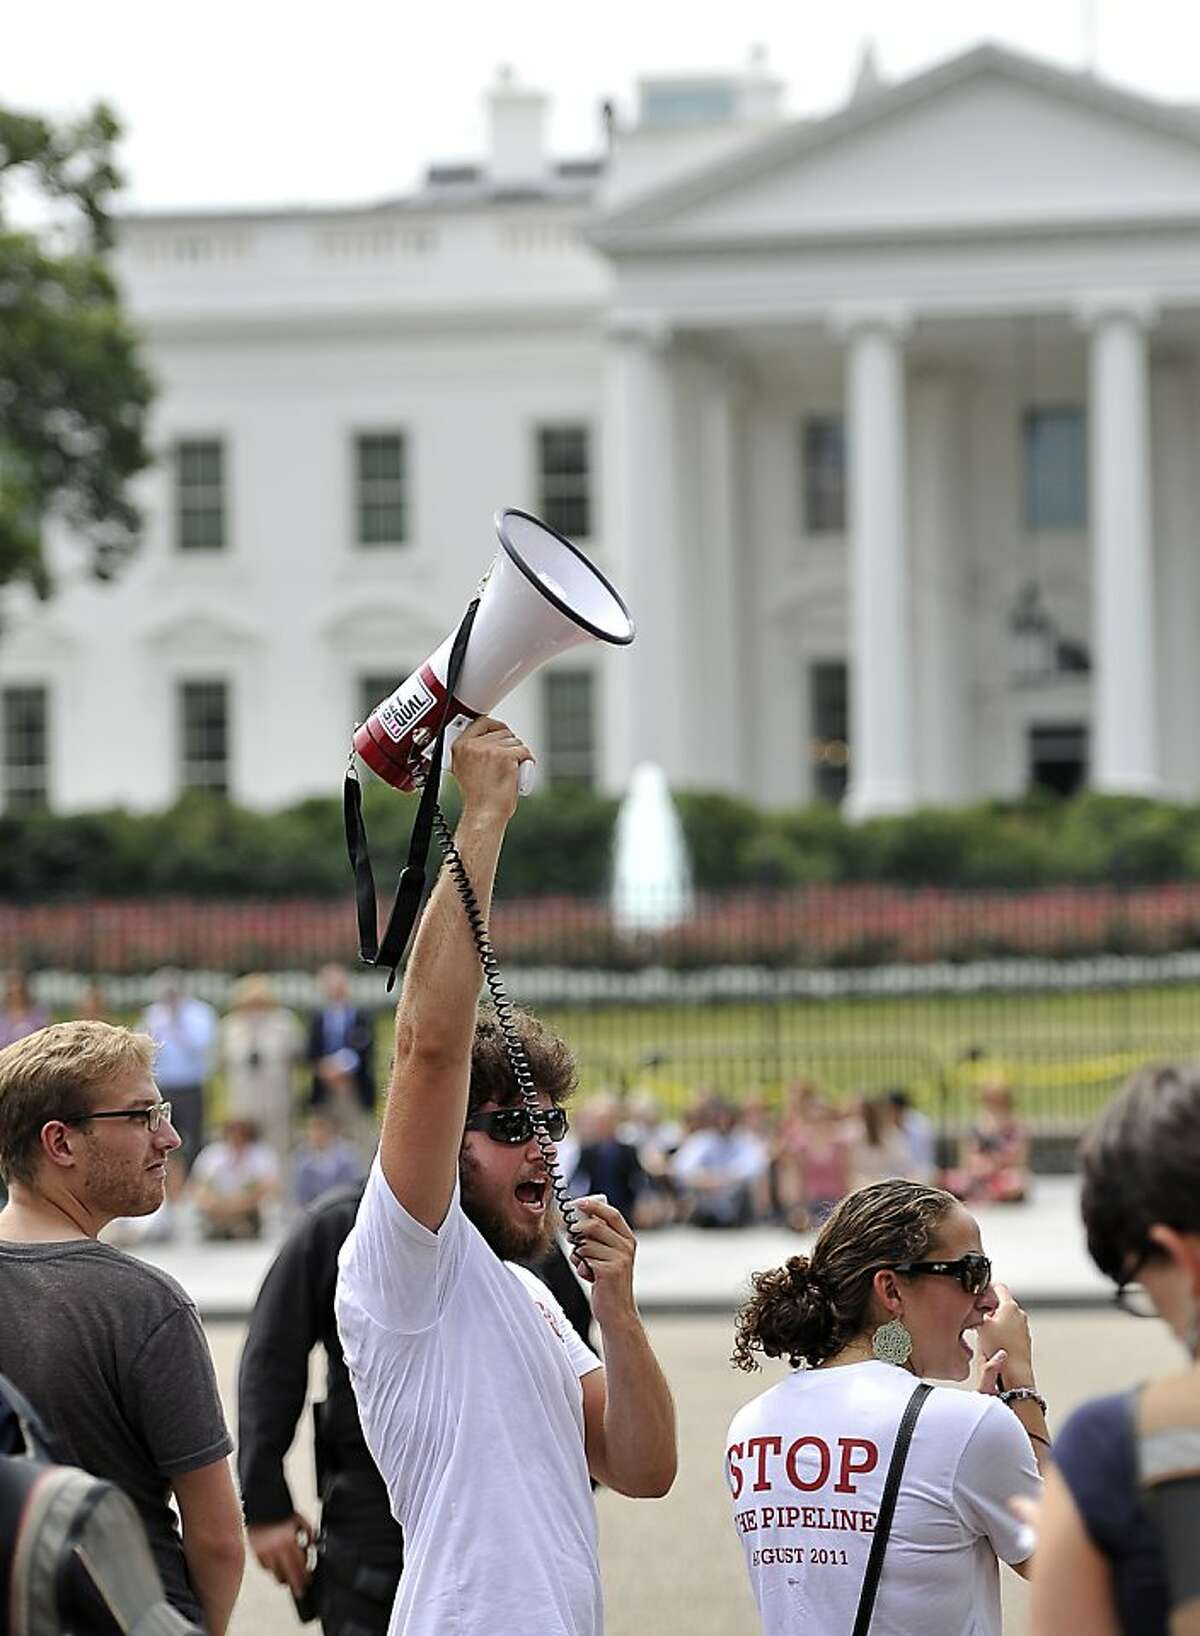 A protester uses a megaphone to shout slogans in front of the White House, on August 26, 2011 in Washington, DC. Demonstrators protested against the proposed Keystone XL oil pipeline project which, if approved, would run from Alberta, Canada to Texas. According the protester the greatest concern would be a spill in environmentally sensitive areas, such as wetlands, flowing streams and rivers, and areas with populations of sensitive wildlife or plant species. AFP PHOTO/ Mladen ANTONOV (Photo credit should read MLADEN ANTONOV/AFP/Getty Images)